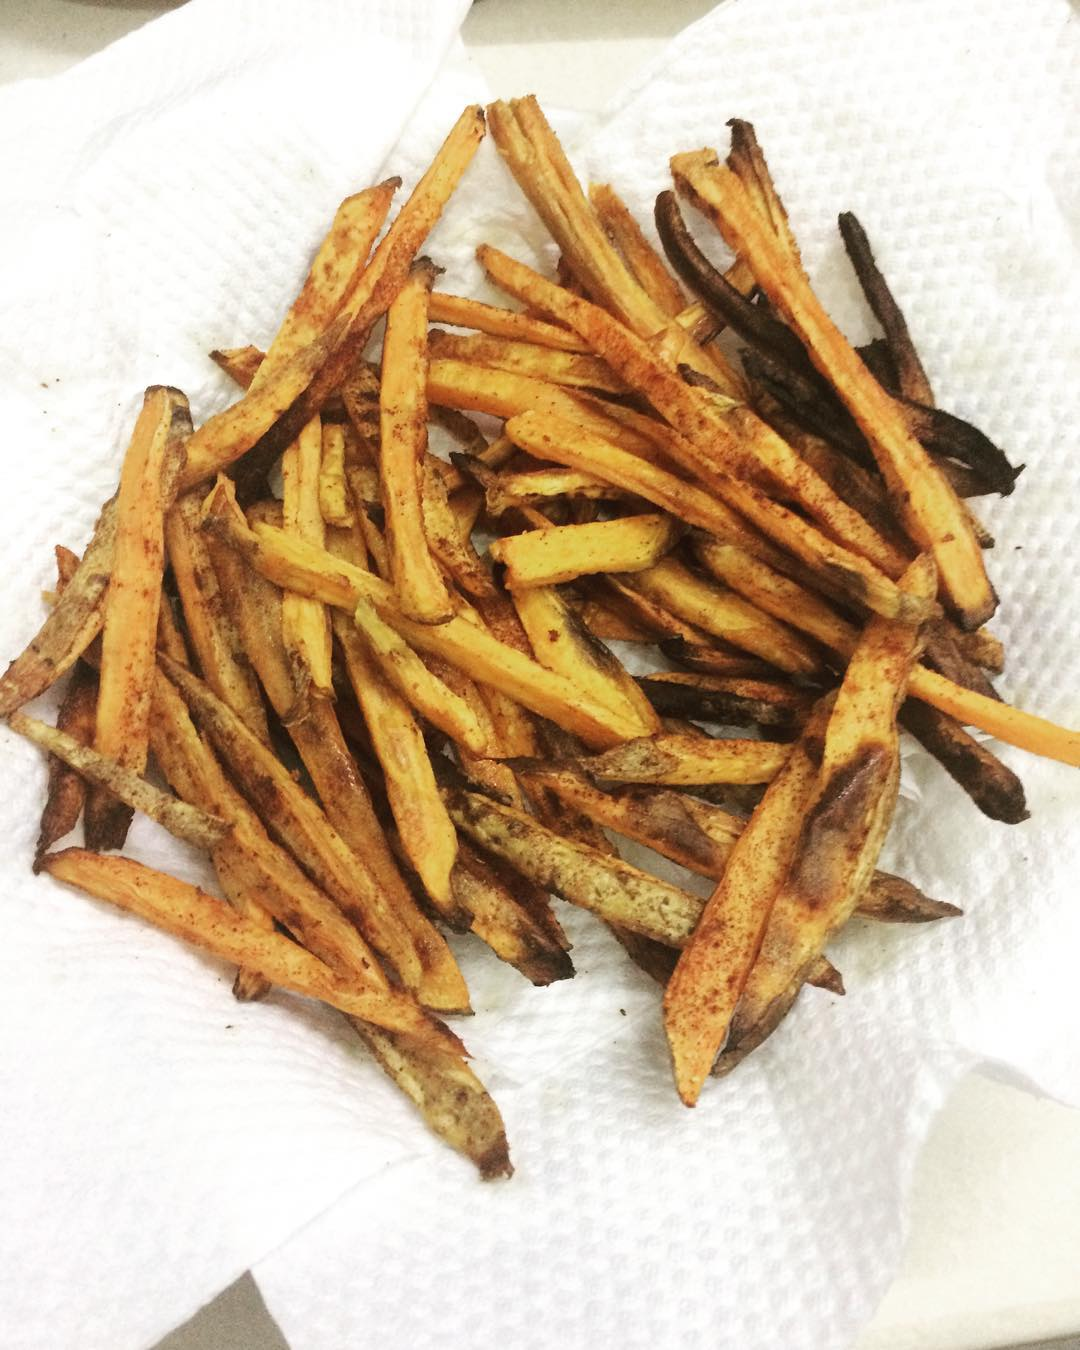 baked spicy cinnamon sweet potato fries {one of my favorites!} by @fadilah.ansari